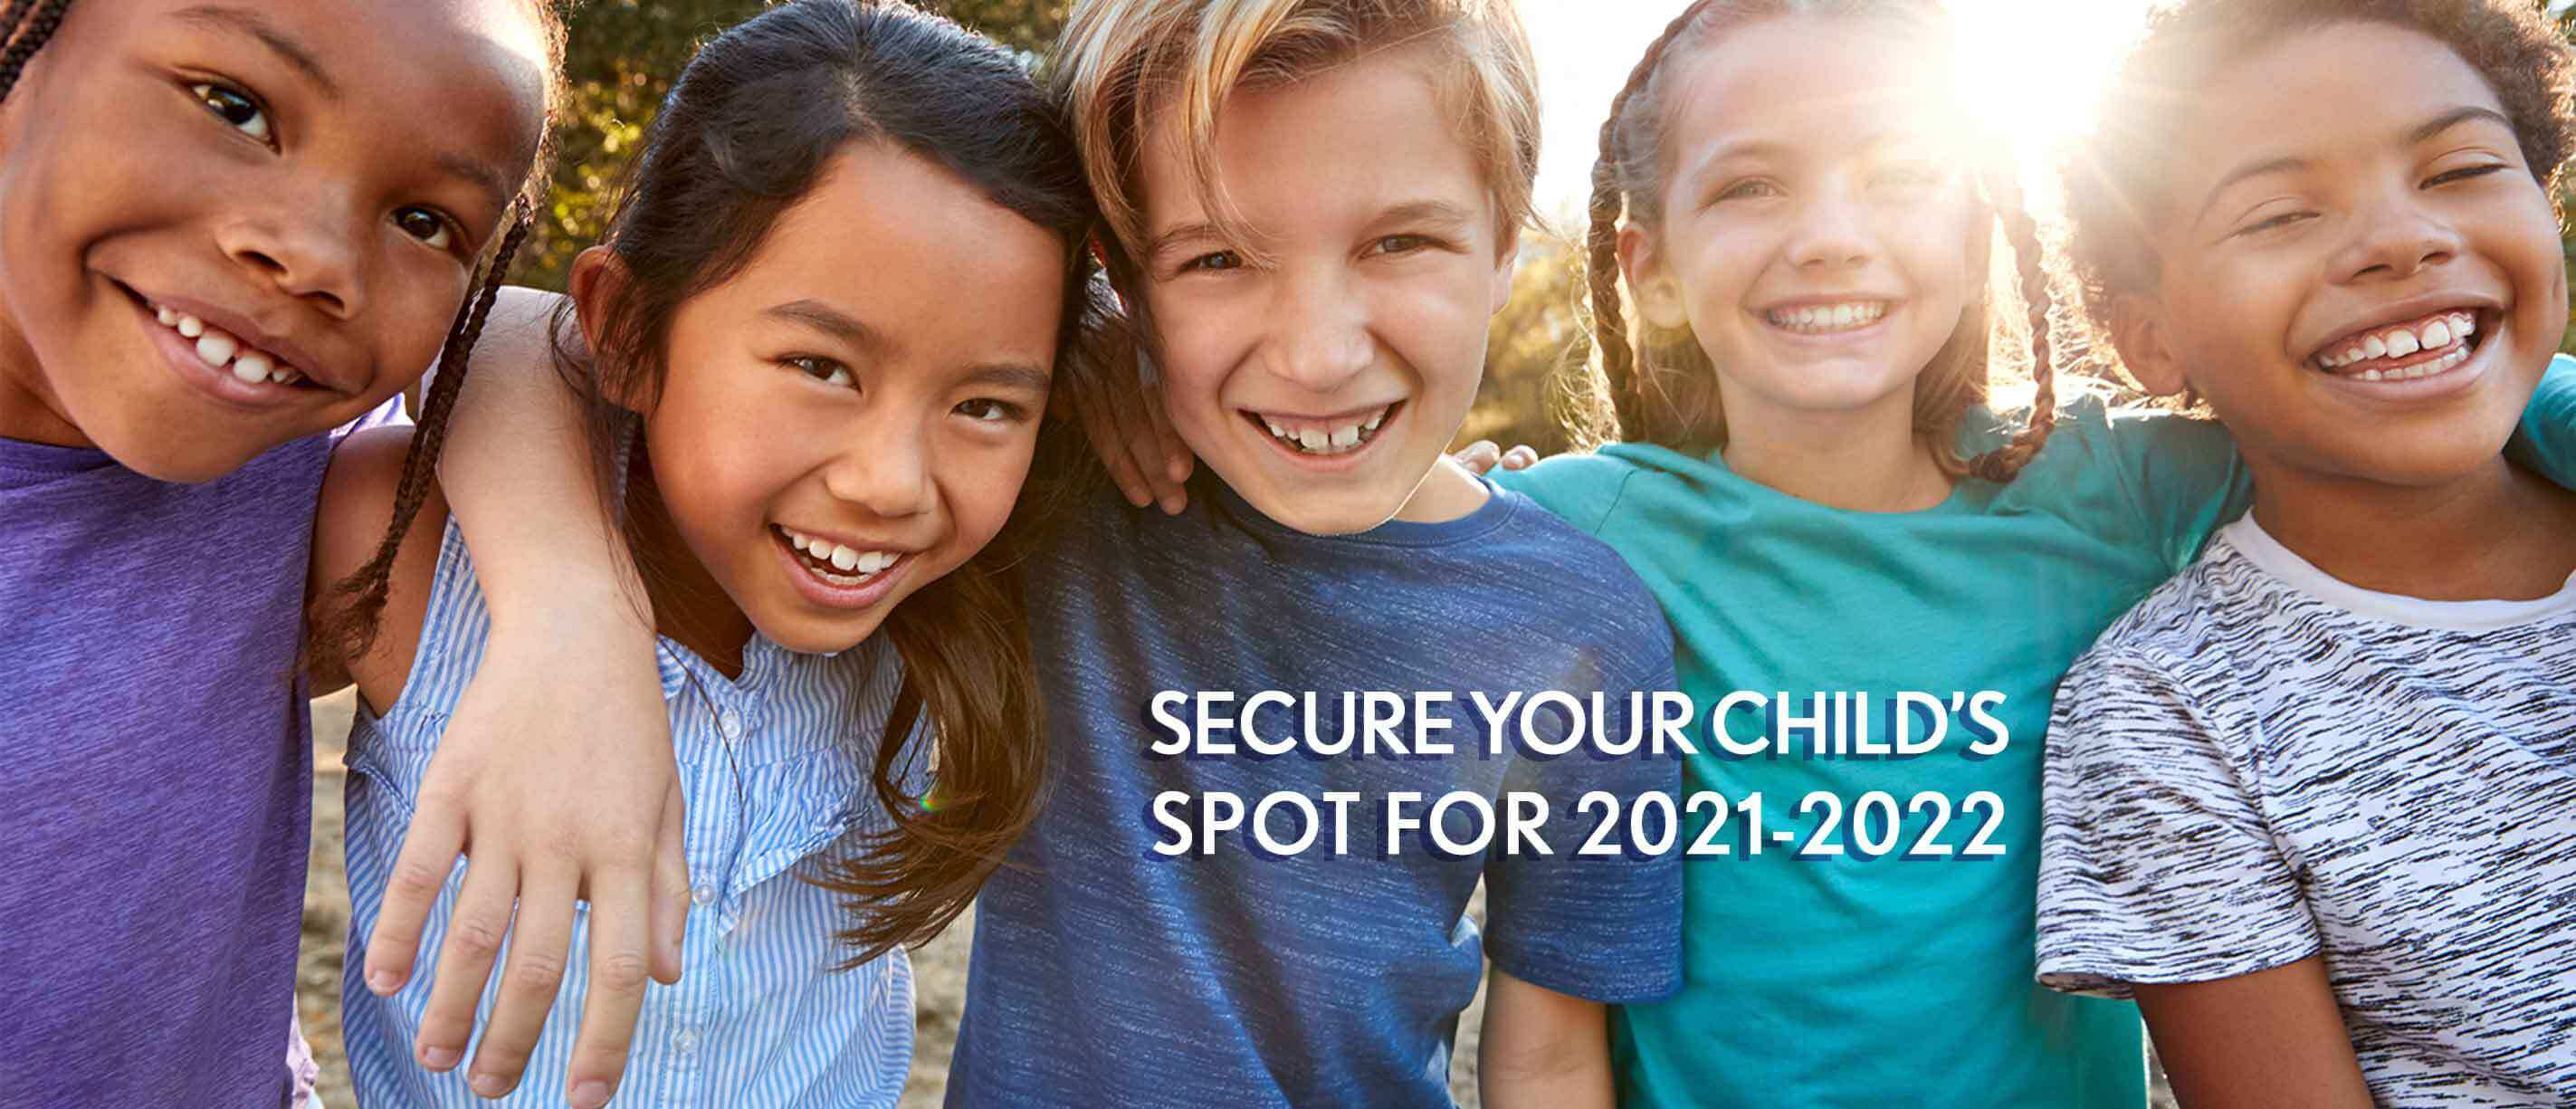 Secure Your Childs Spot